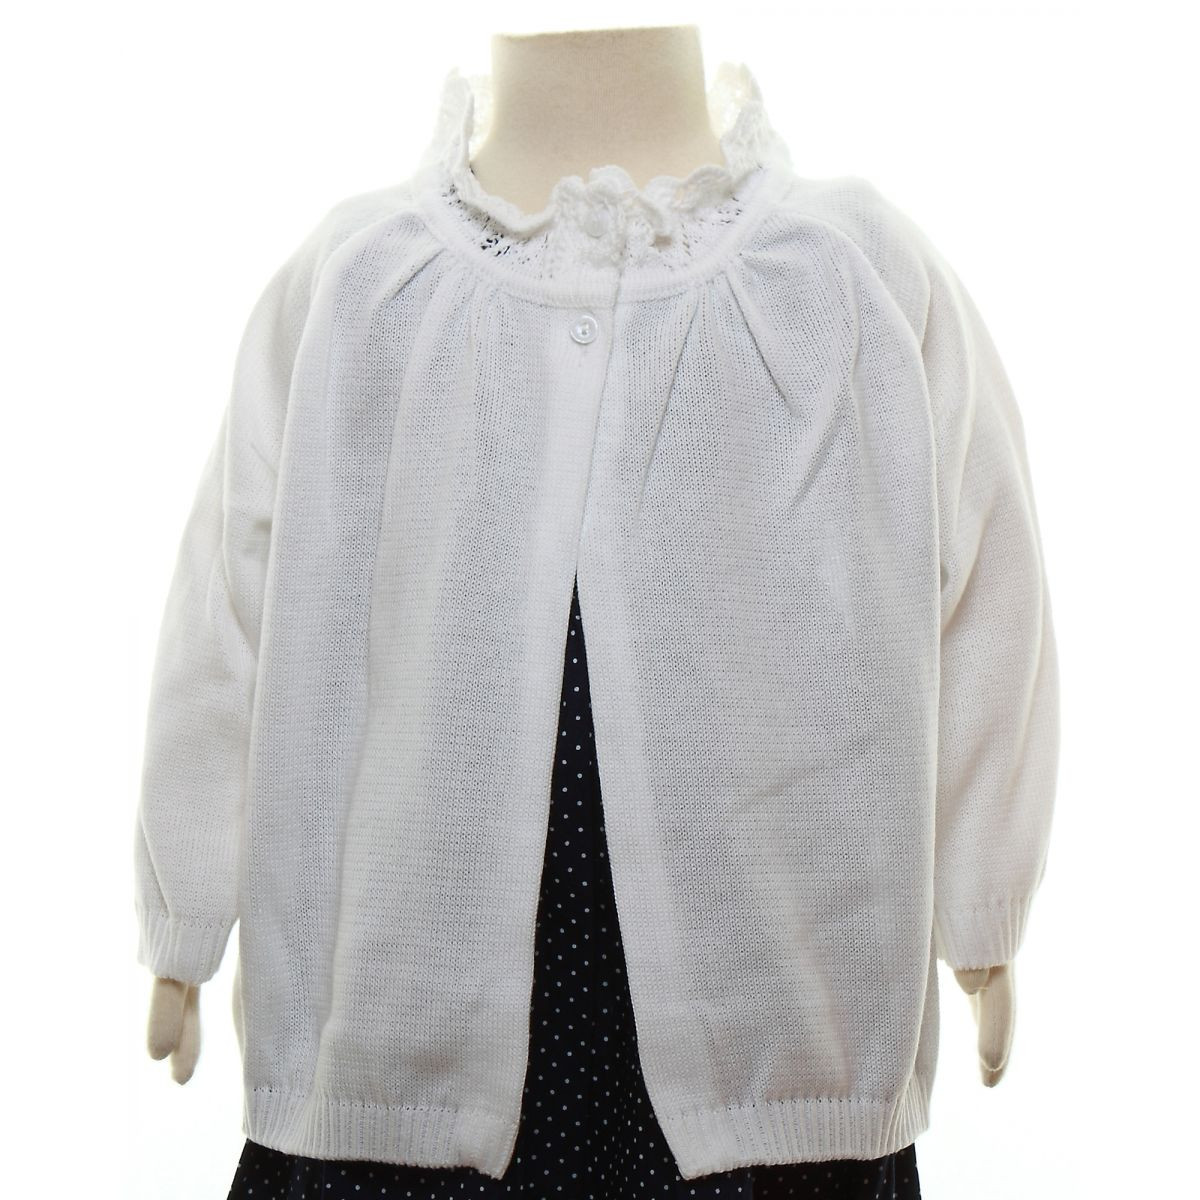 Luxury Crochet Trim Baby Girls White Cardigan White Crochet Sweater Of Wonderful 44 Ideas White Crochet Sweater